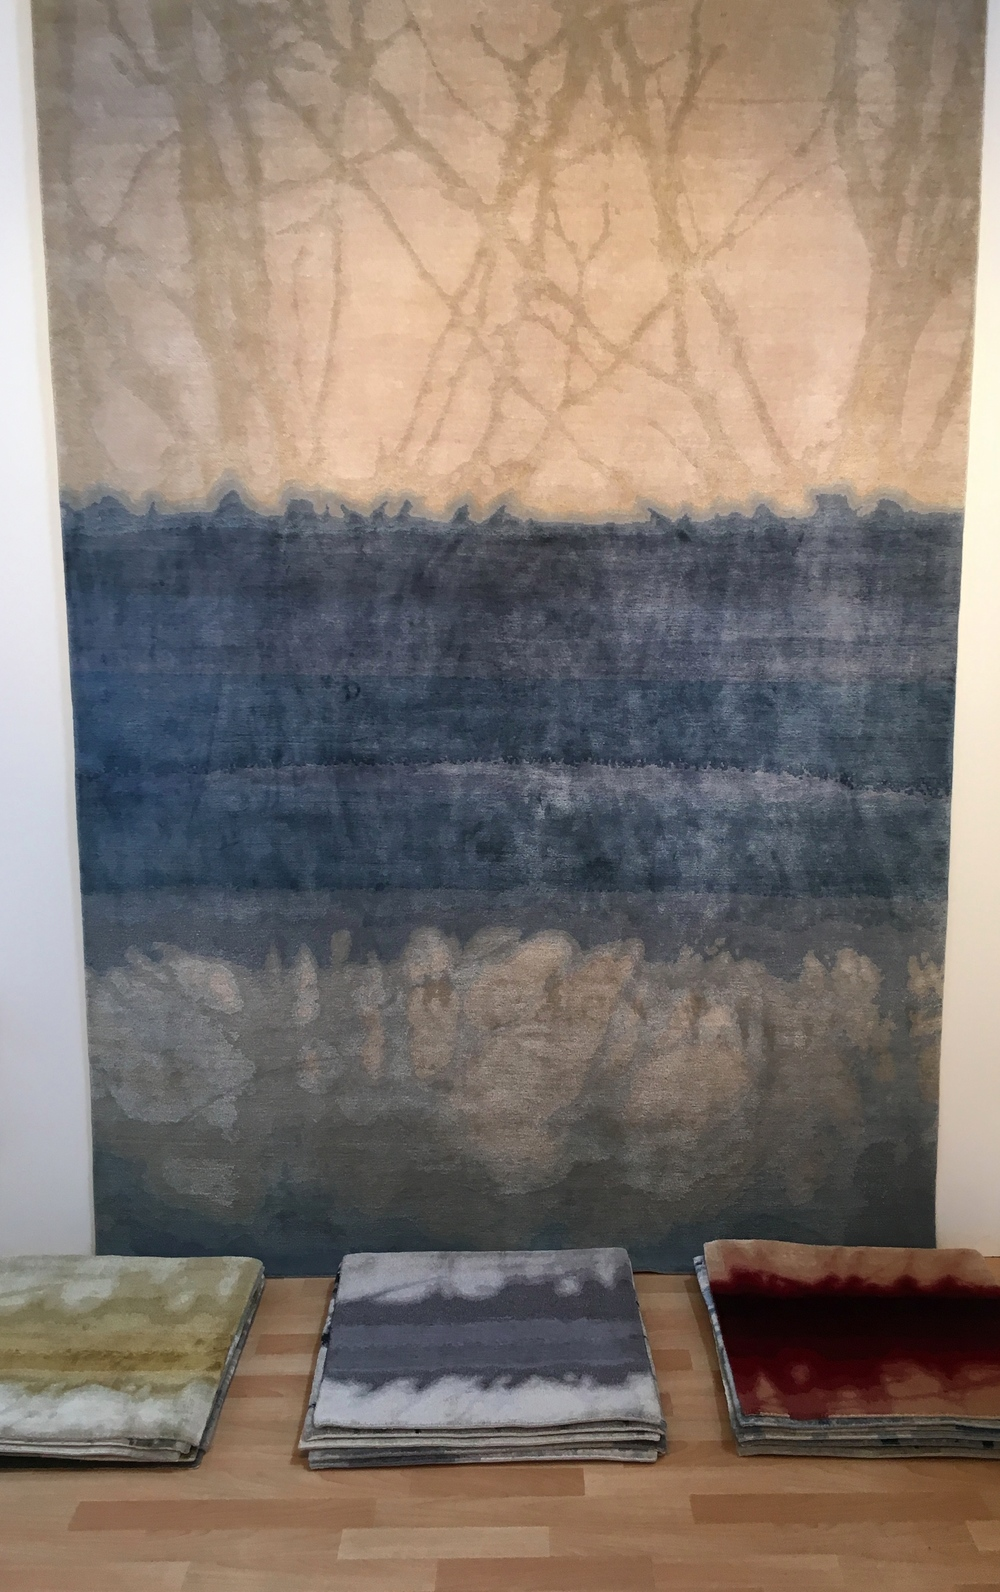 Tania Johnson Design exhibited pieces from her beautiful Journeys in Colour collection of hand knotted rugs, inspired by her photographs of light, shadows and reflections.  She works with makers in Nepal, supported by humanitarian organisation Good Weave.